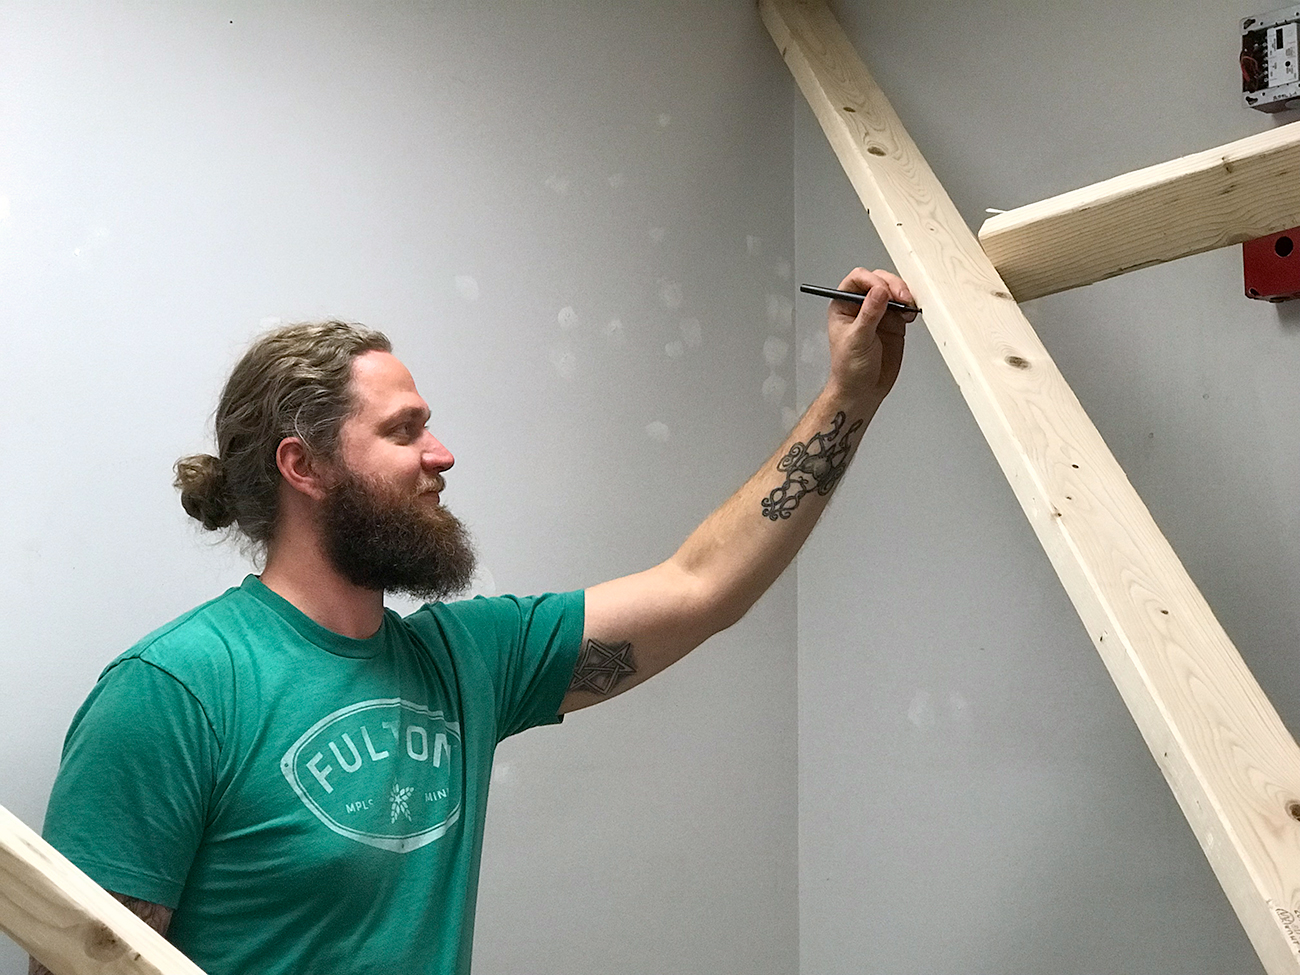 MFA student working on project